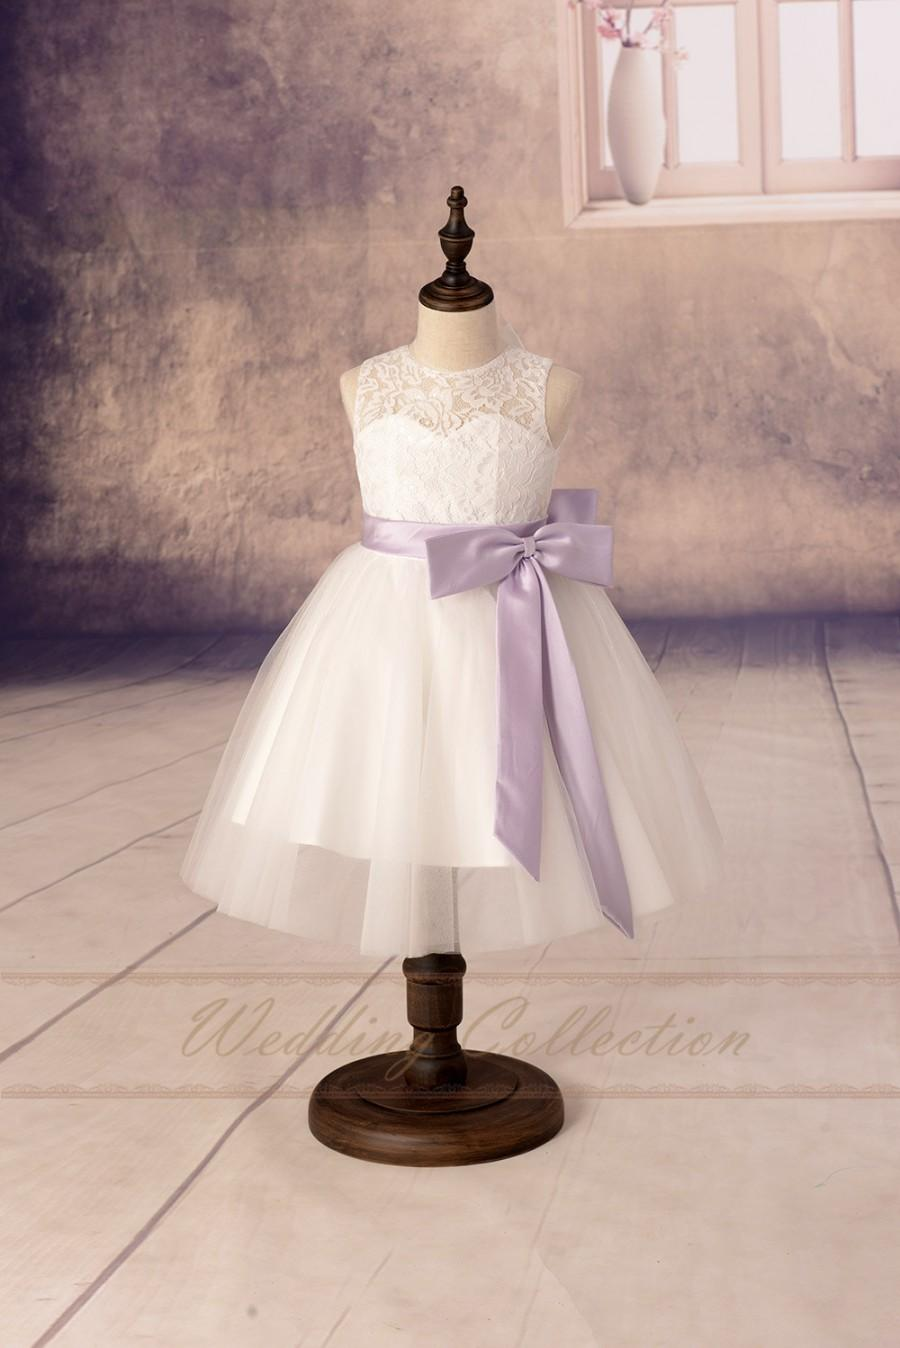 Düğün - Lace Flower Girl Dresses, Tulle Flower Girls Dress With Lilac Sash and Bow